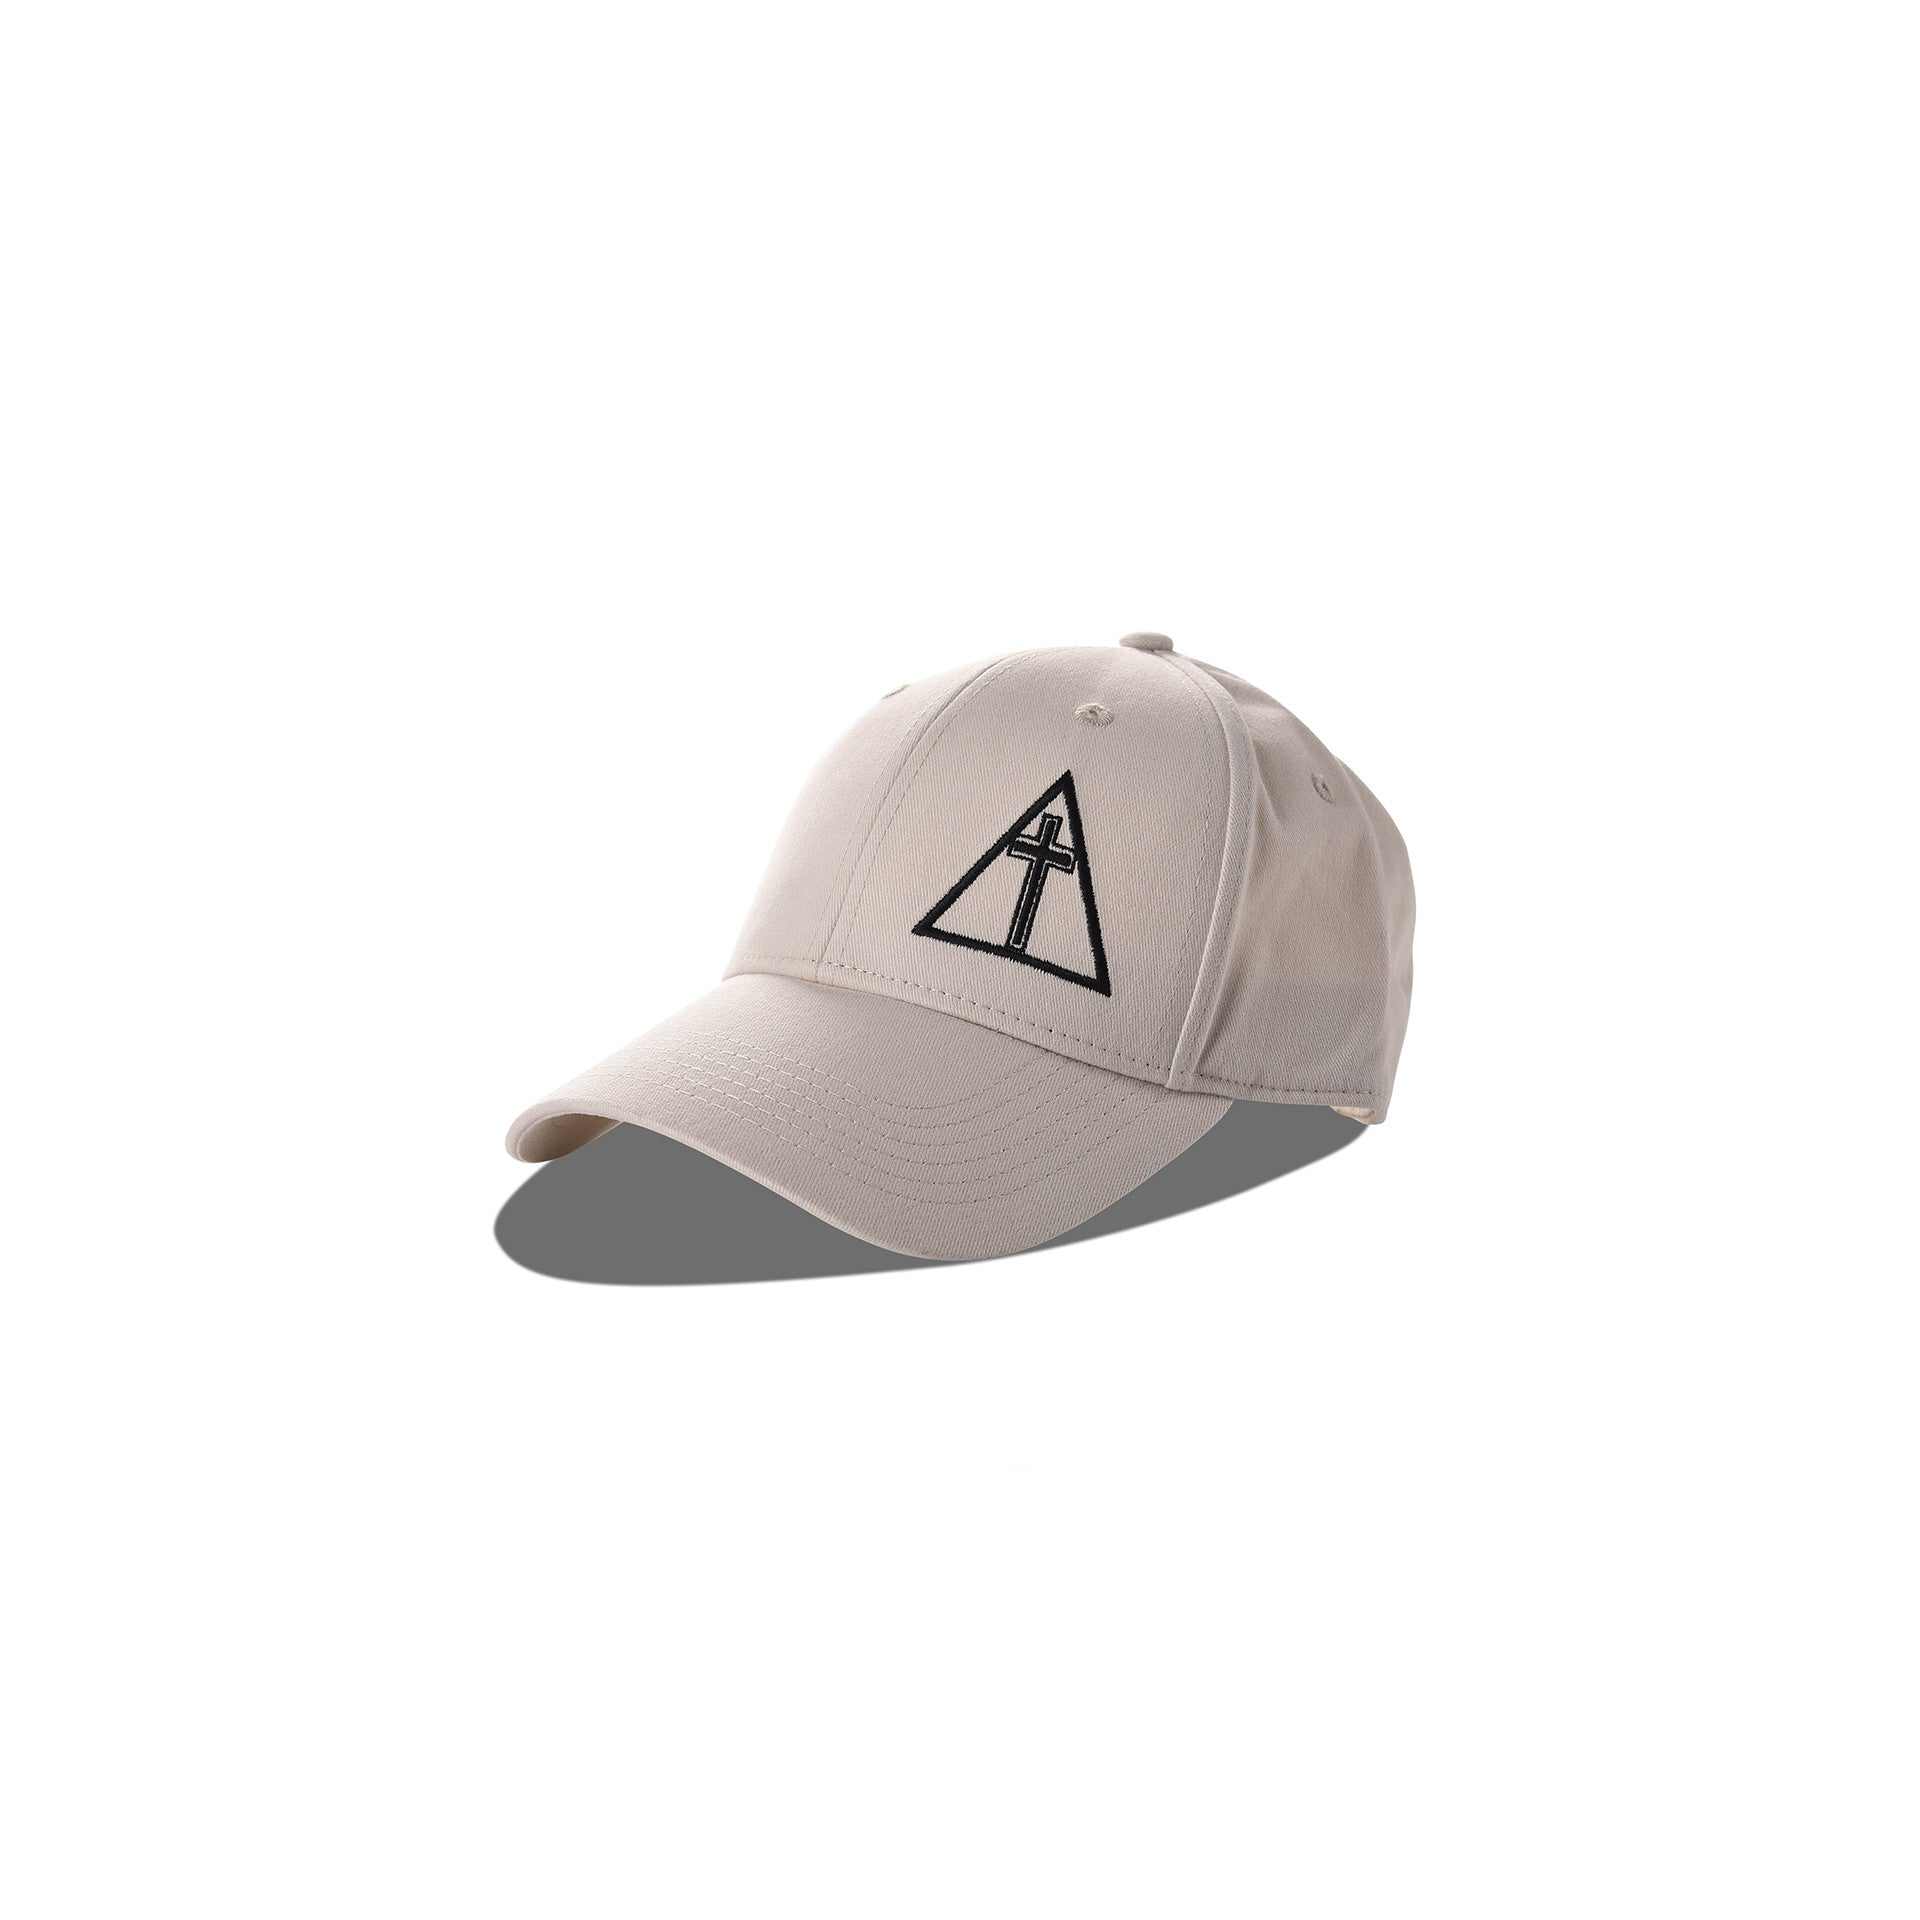 Luna Blanche Cross Cap